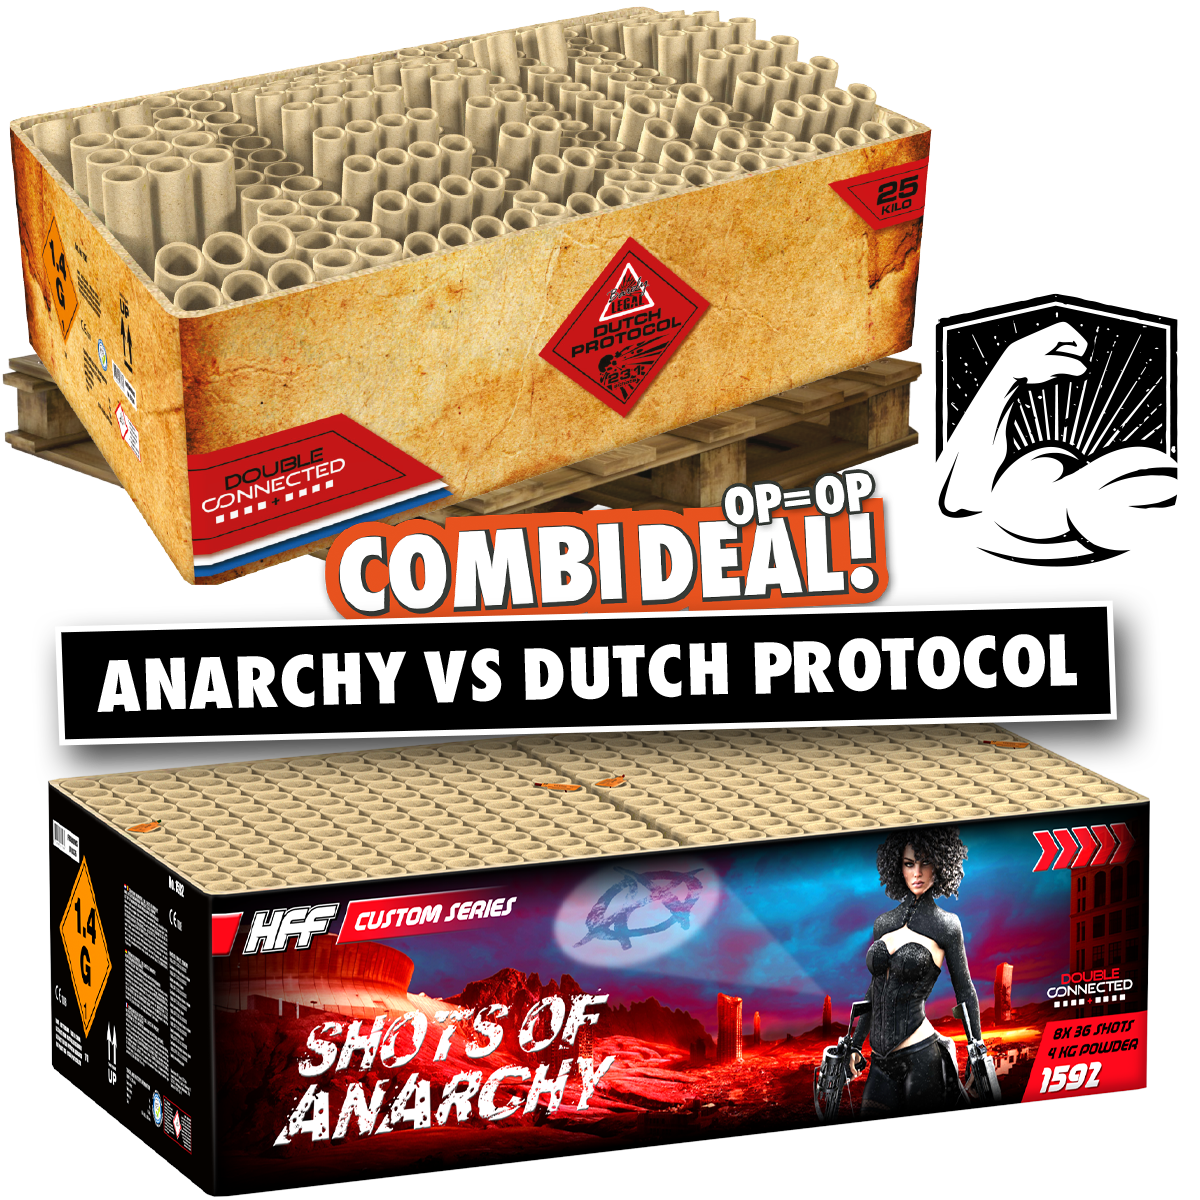 Combi deal anarchy vs dutch protocol